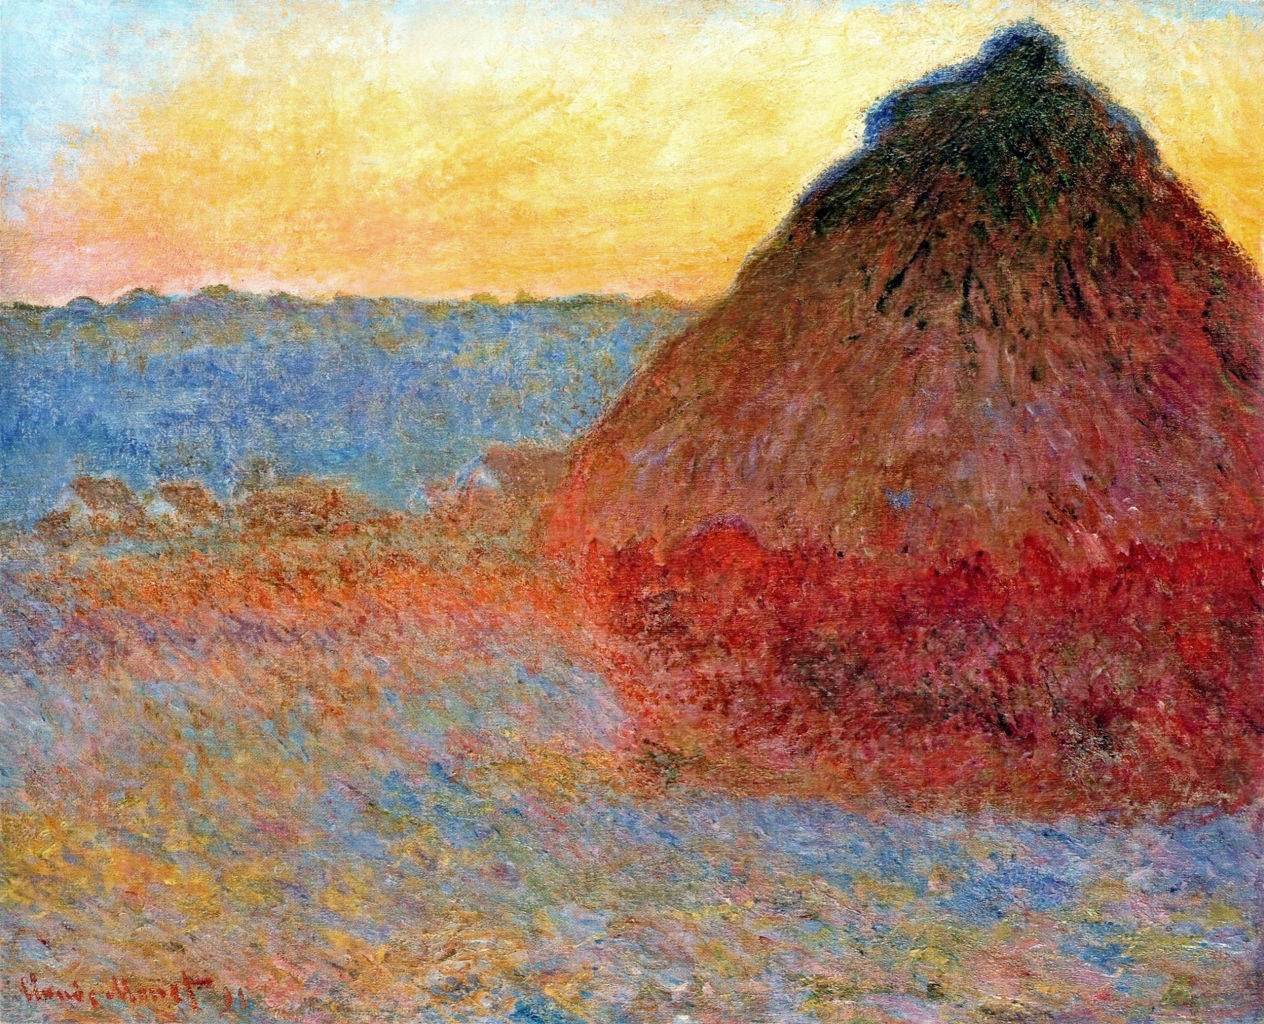 Grainstack, Impression in Pinks and Blues 1891